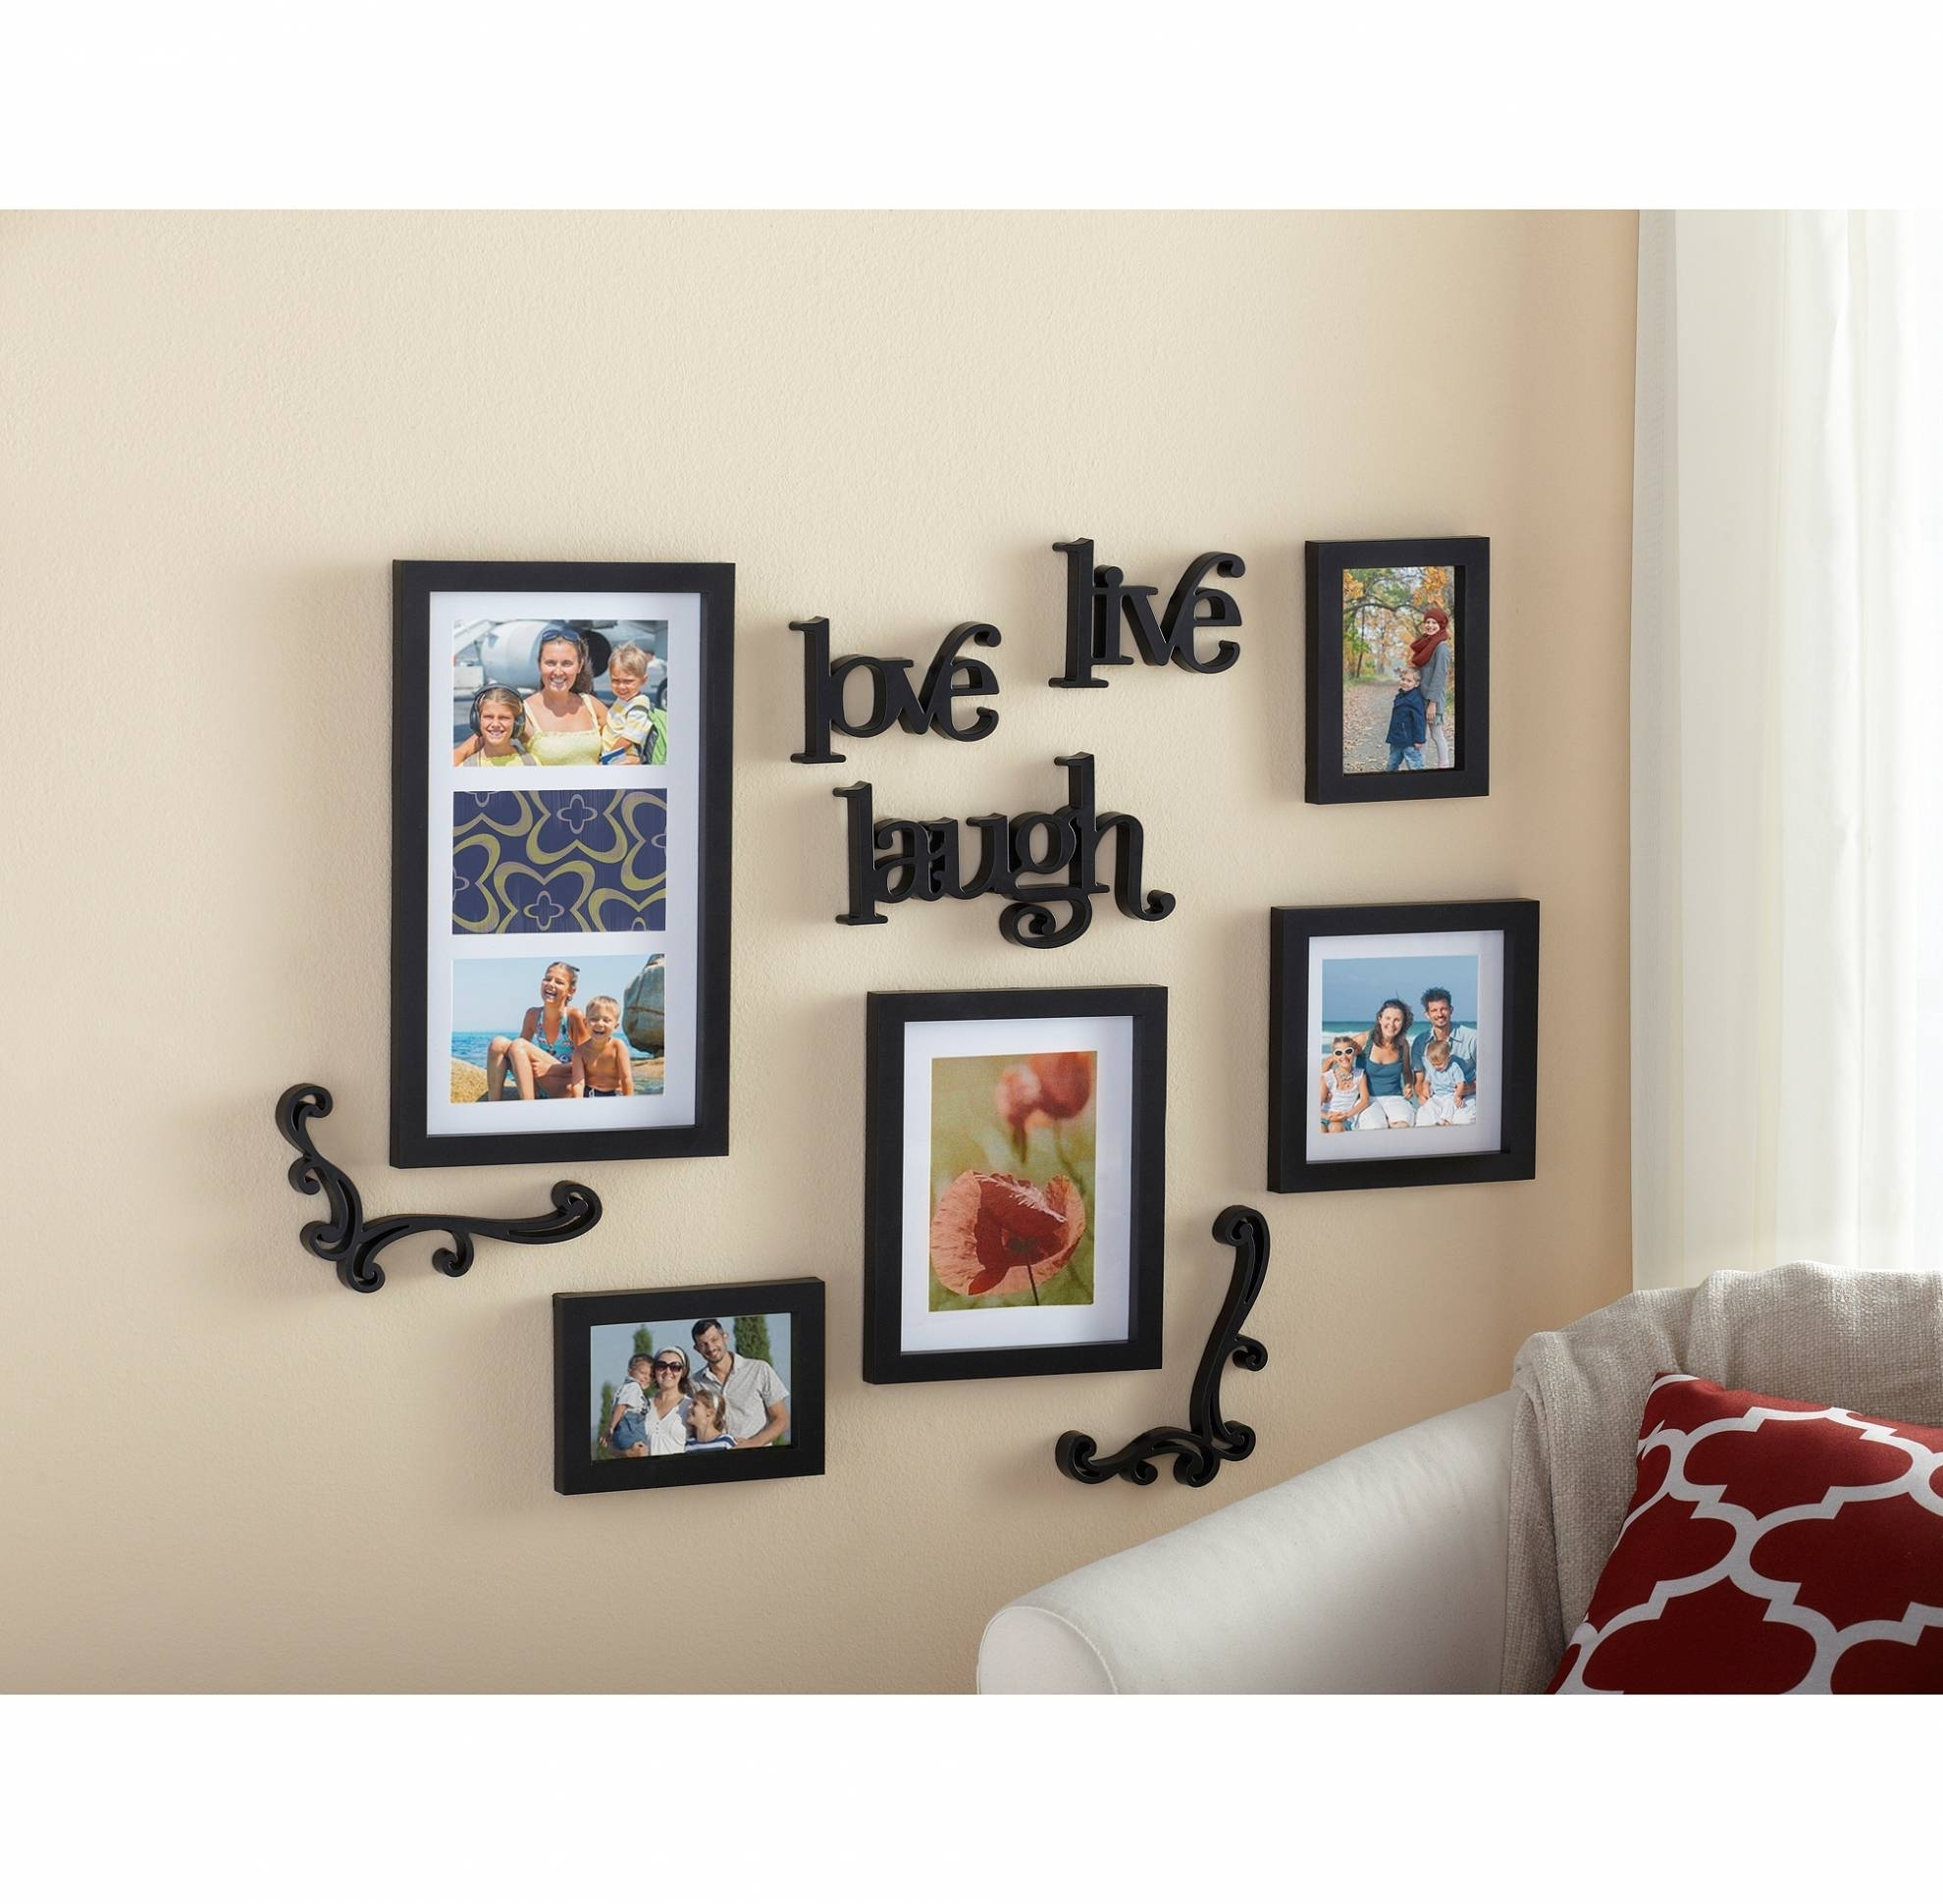 18 Best Ideas Of Wall Art At Walmart With Most Up To Date Canvas Wall Art At Walmart (View 1 of 15)